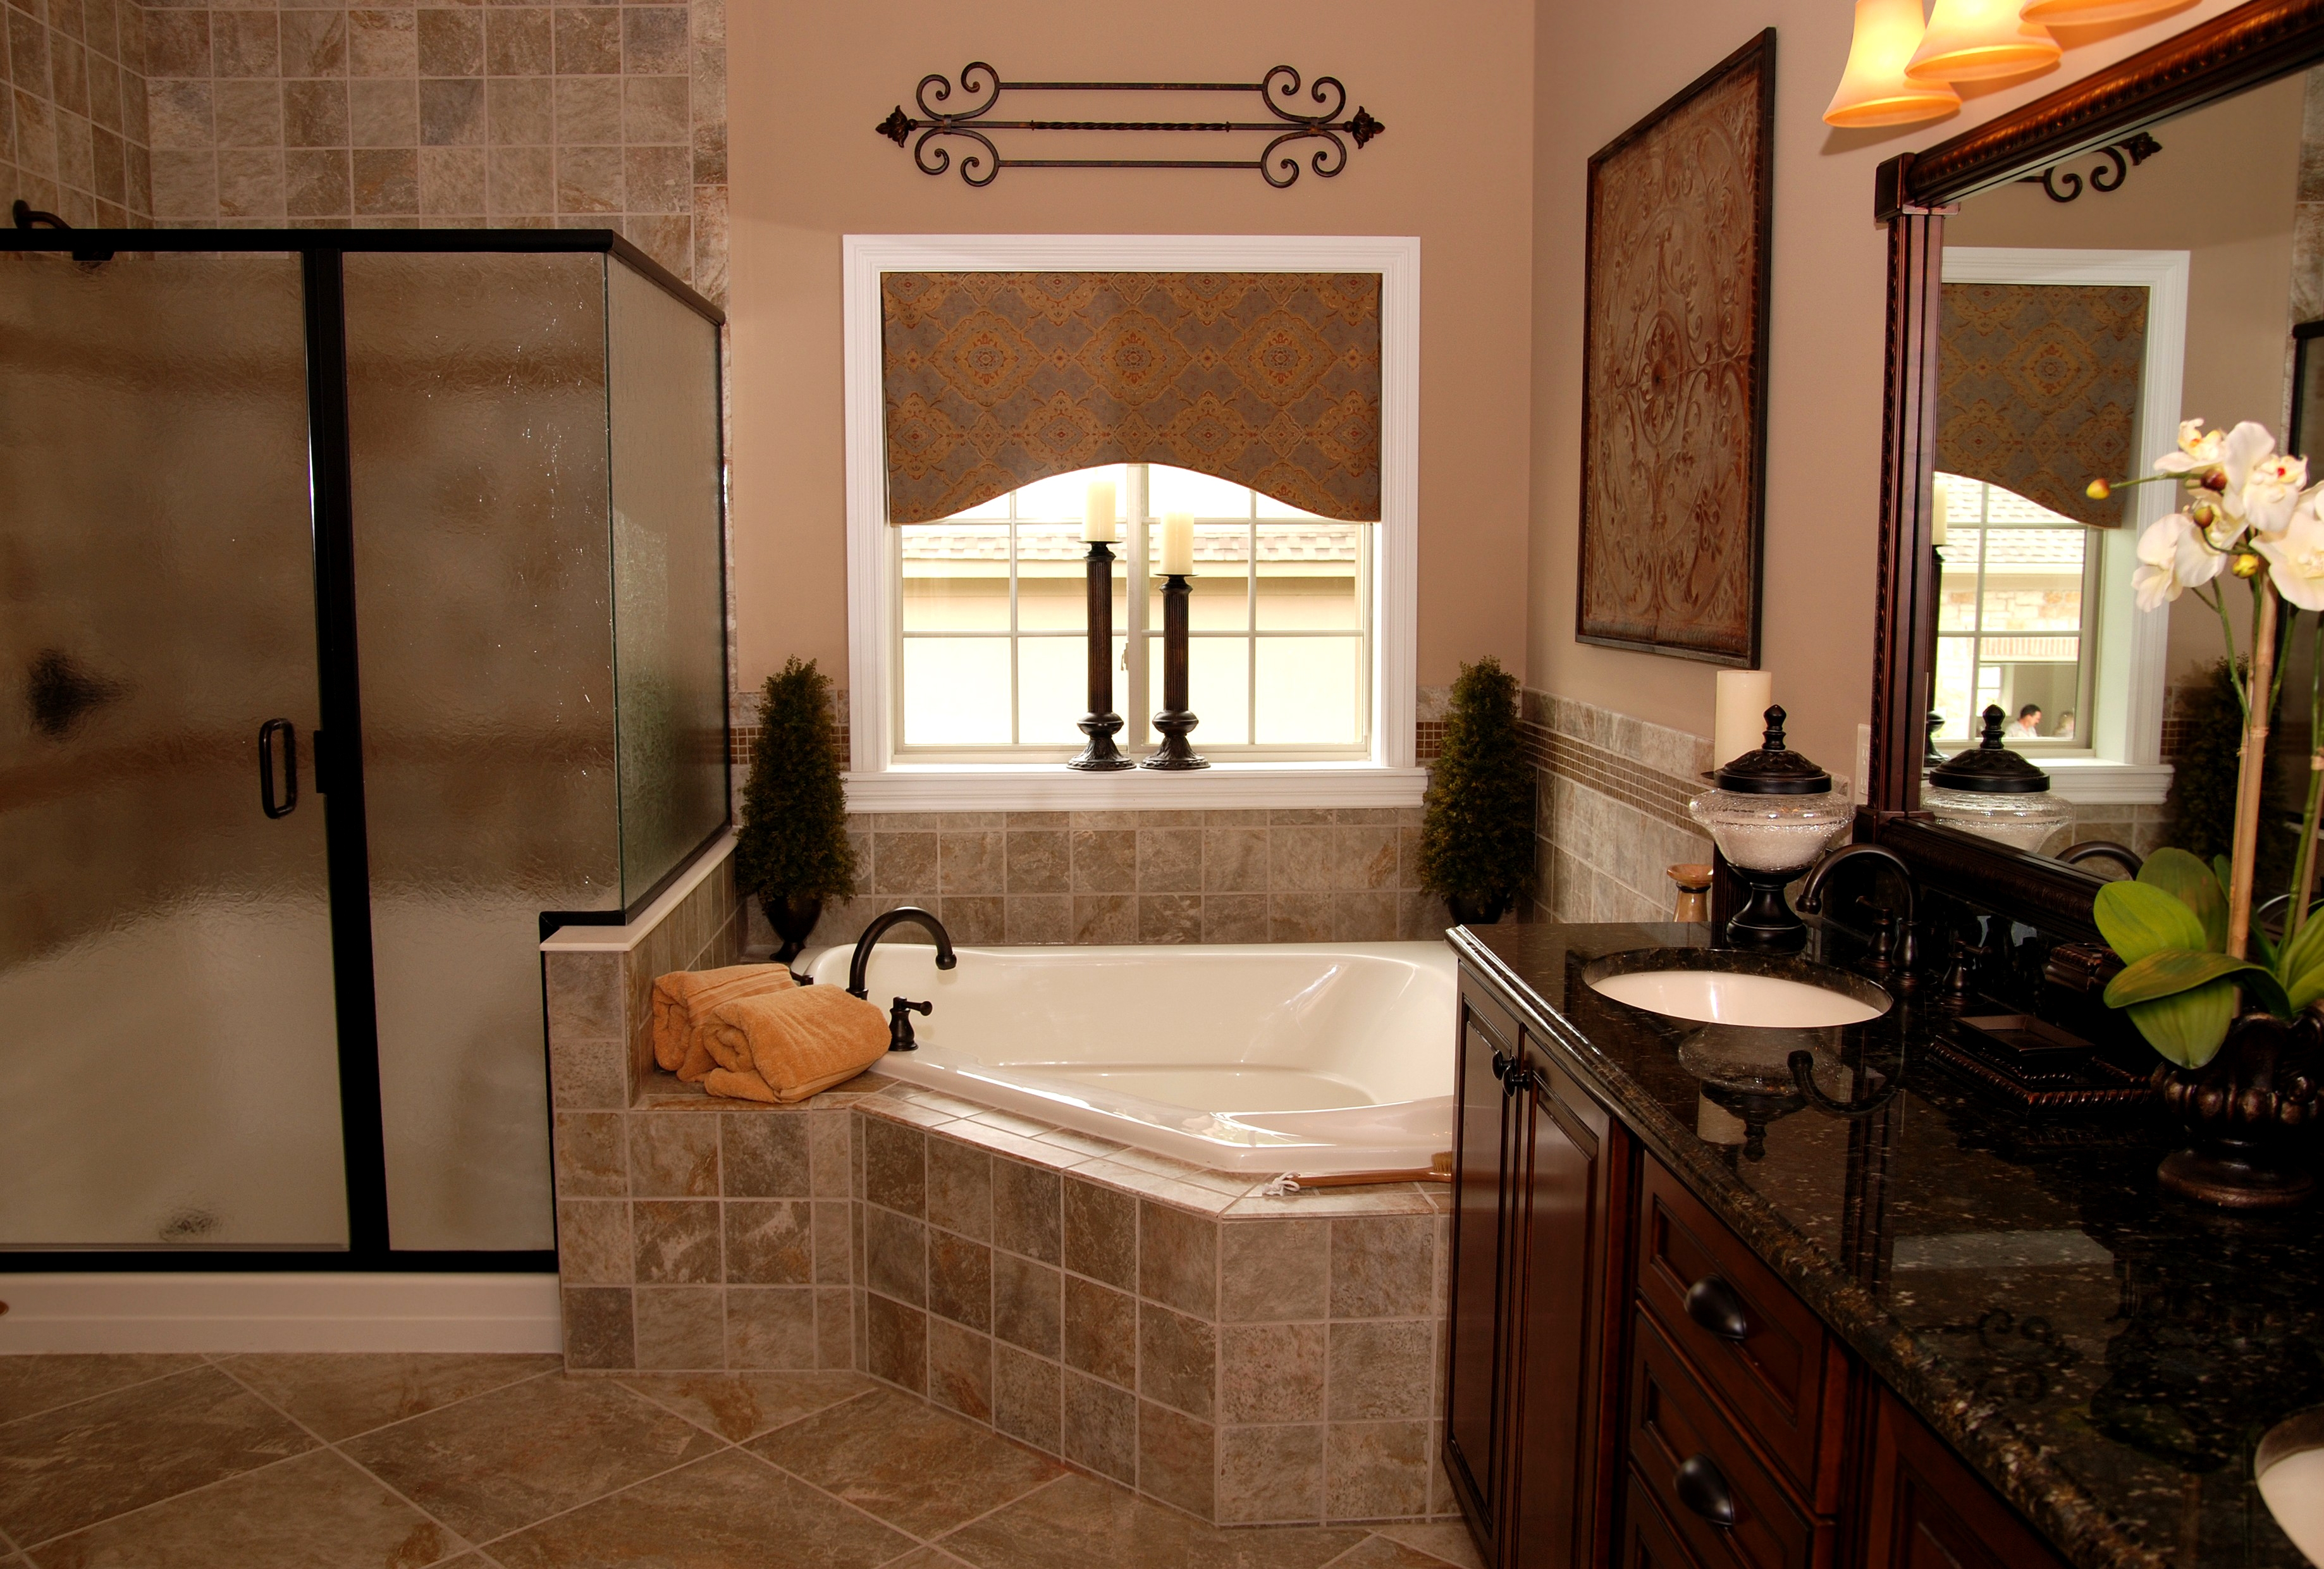 Bathroom remodel ideas review | Shopping Guide. We Are ... on Bathroom Remodel Design Ideas  id=45268